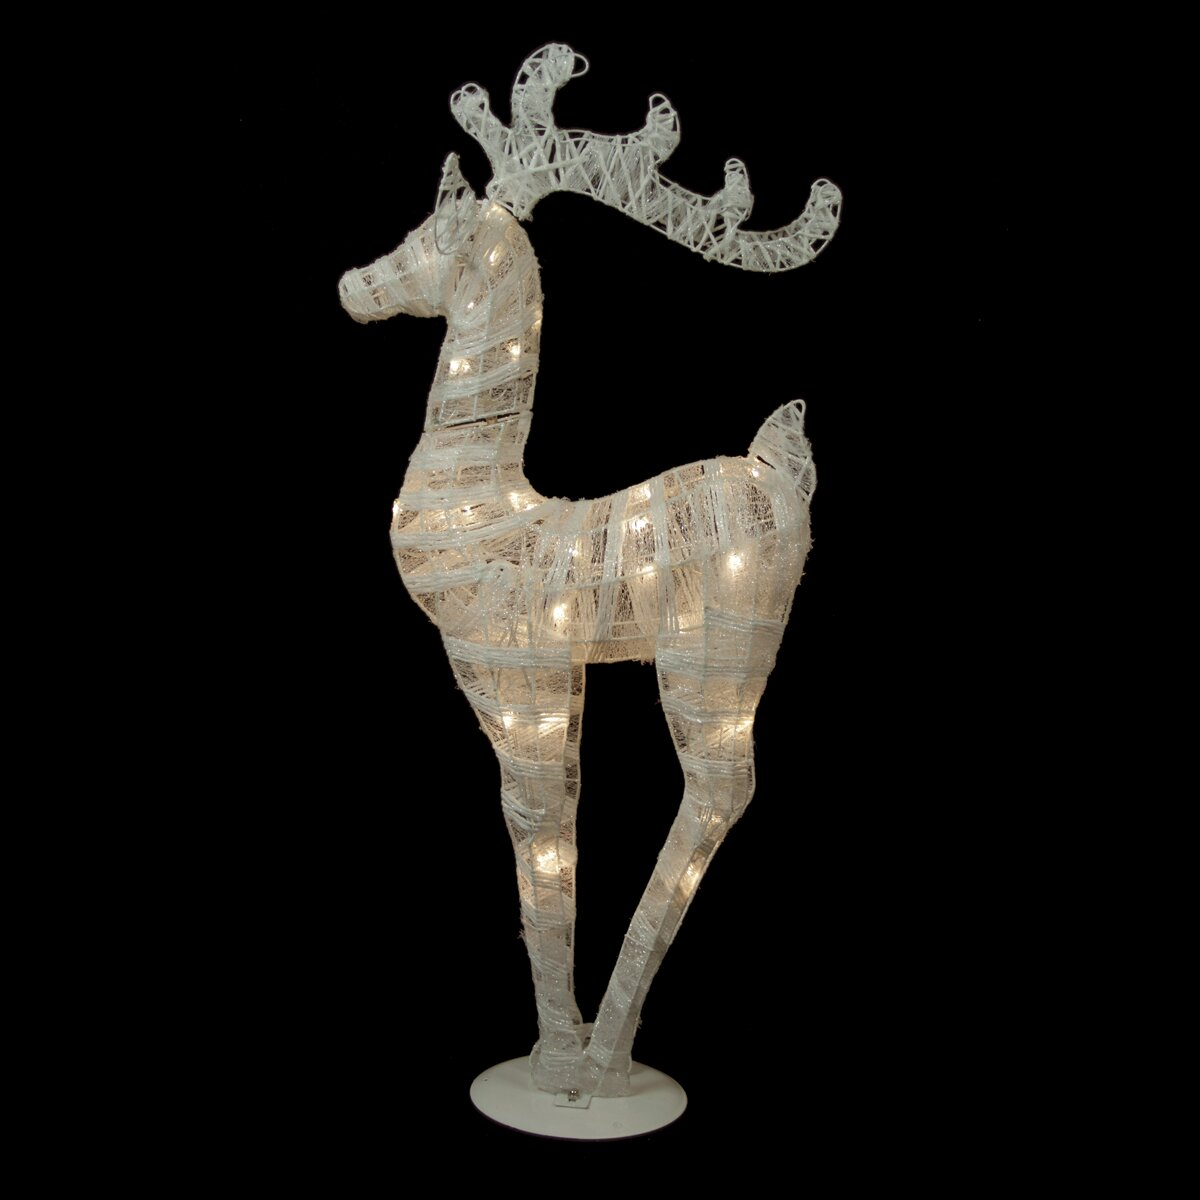 Northlight battery operated glittered led lighted reindeer